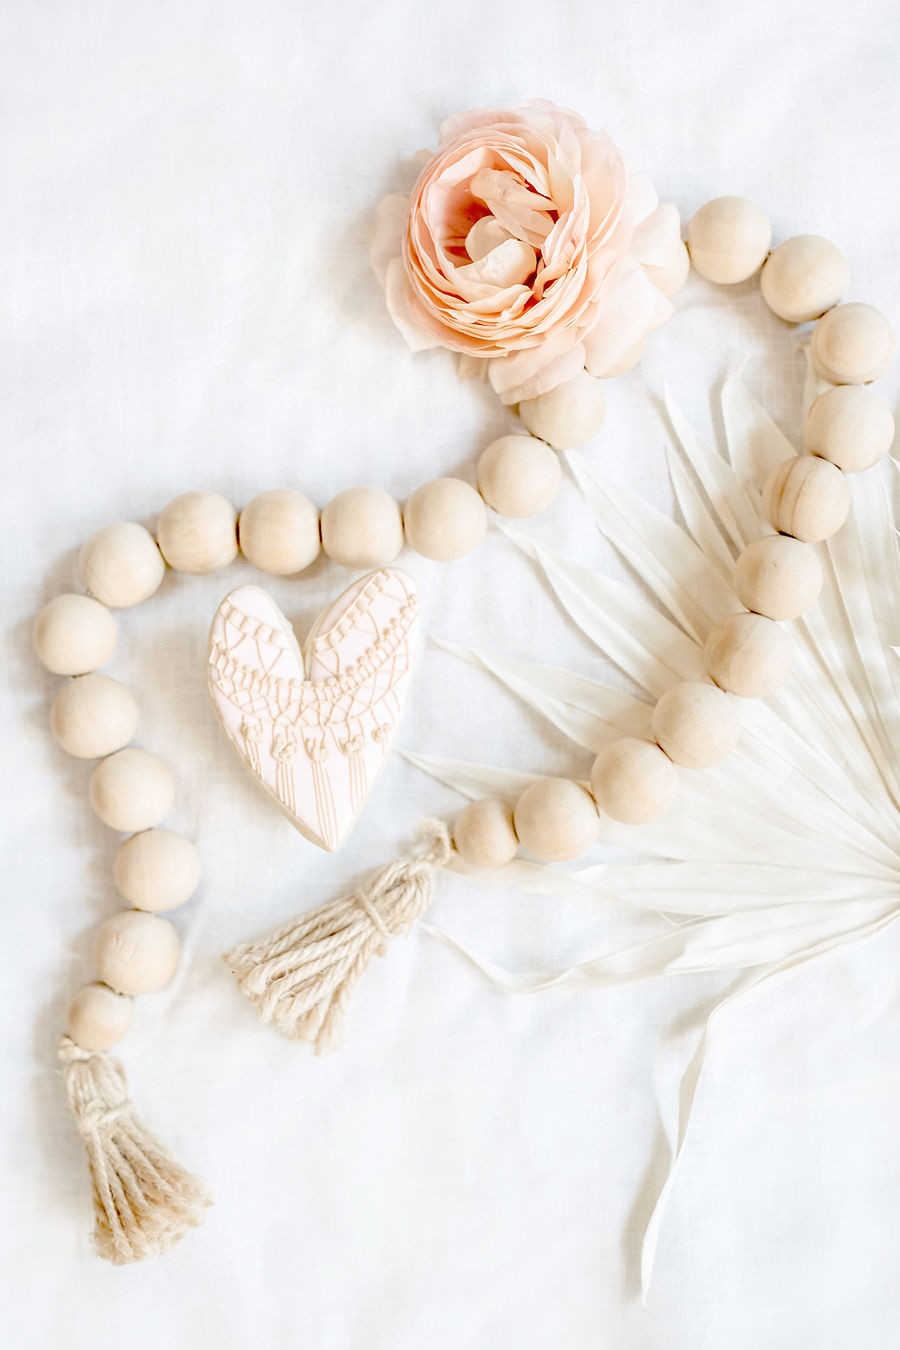 A delicious delicate decorated heart shaped cookie at a boho inspired baby shower next to a wooden string of beads for decor.